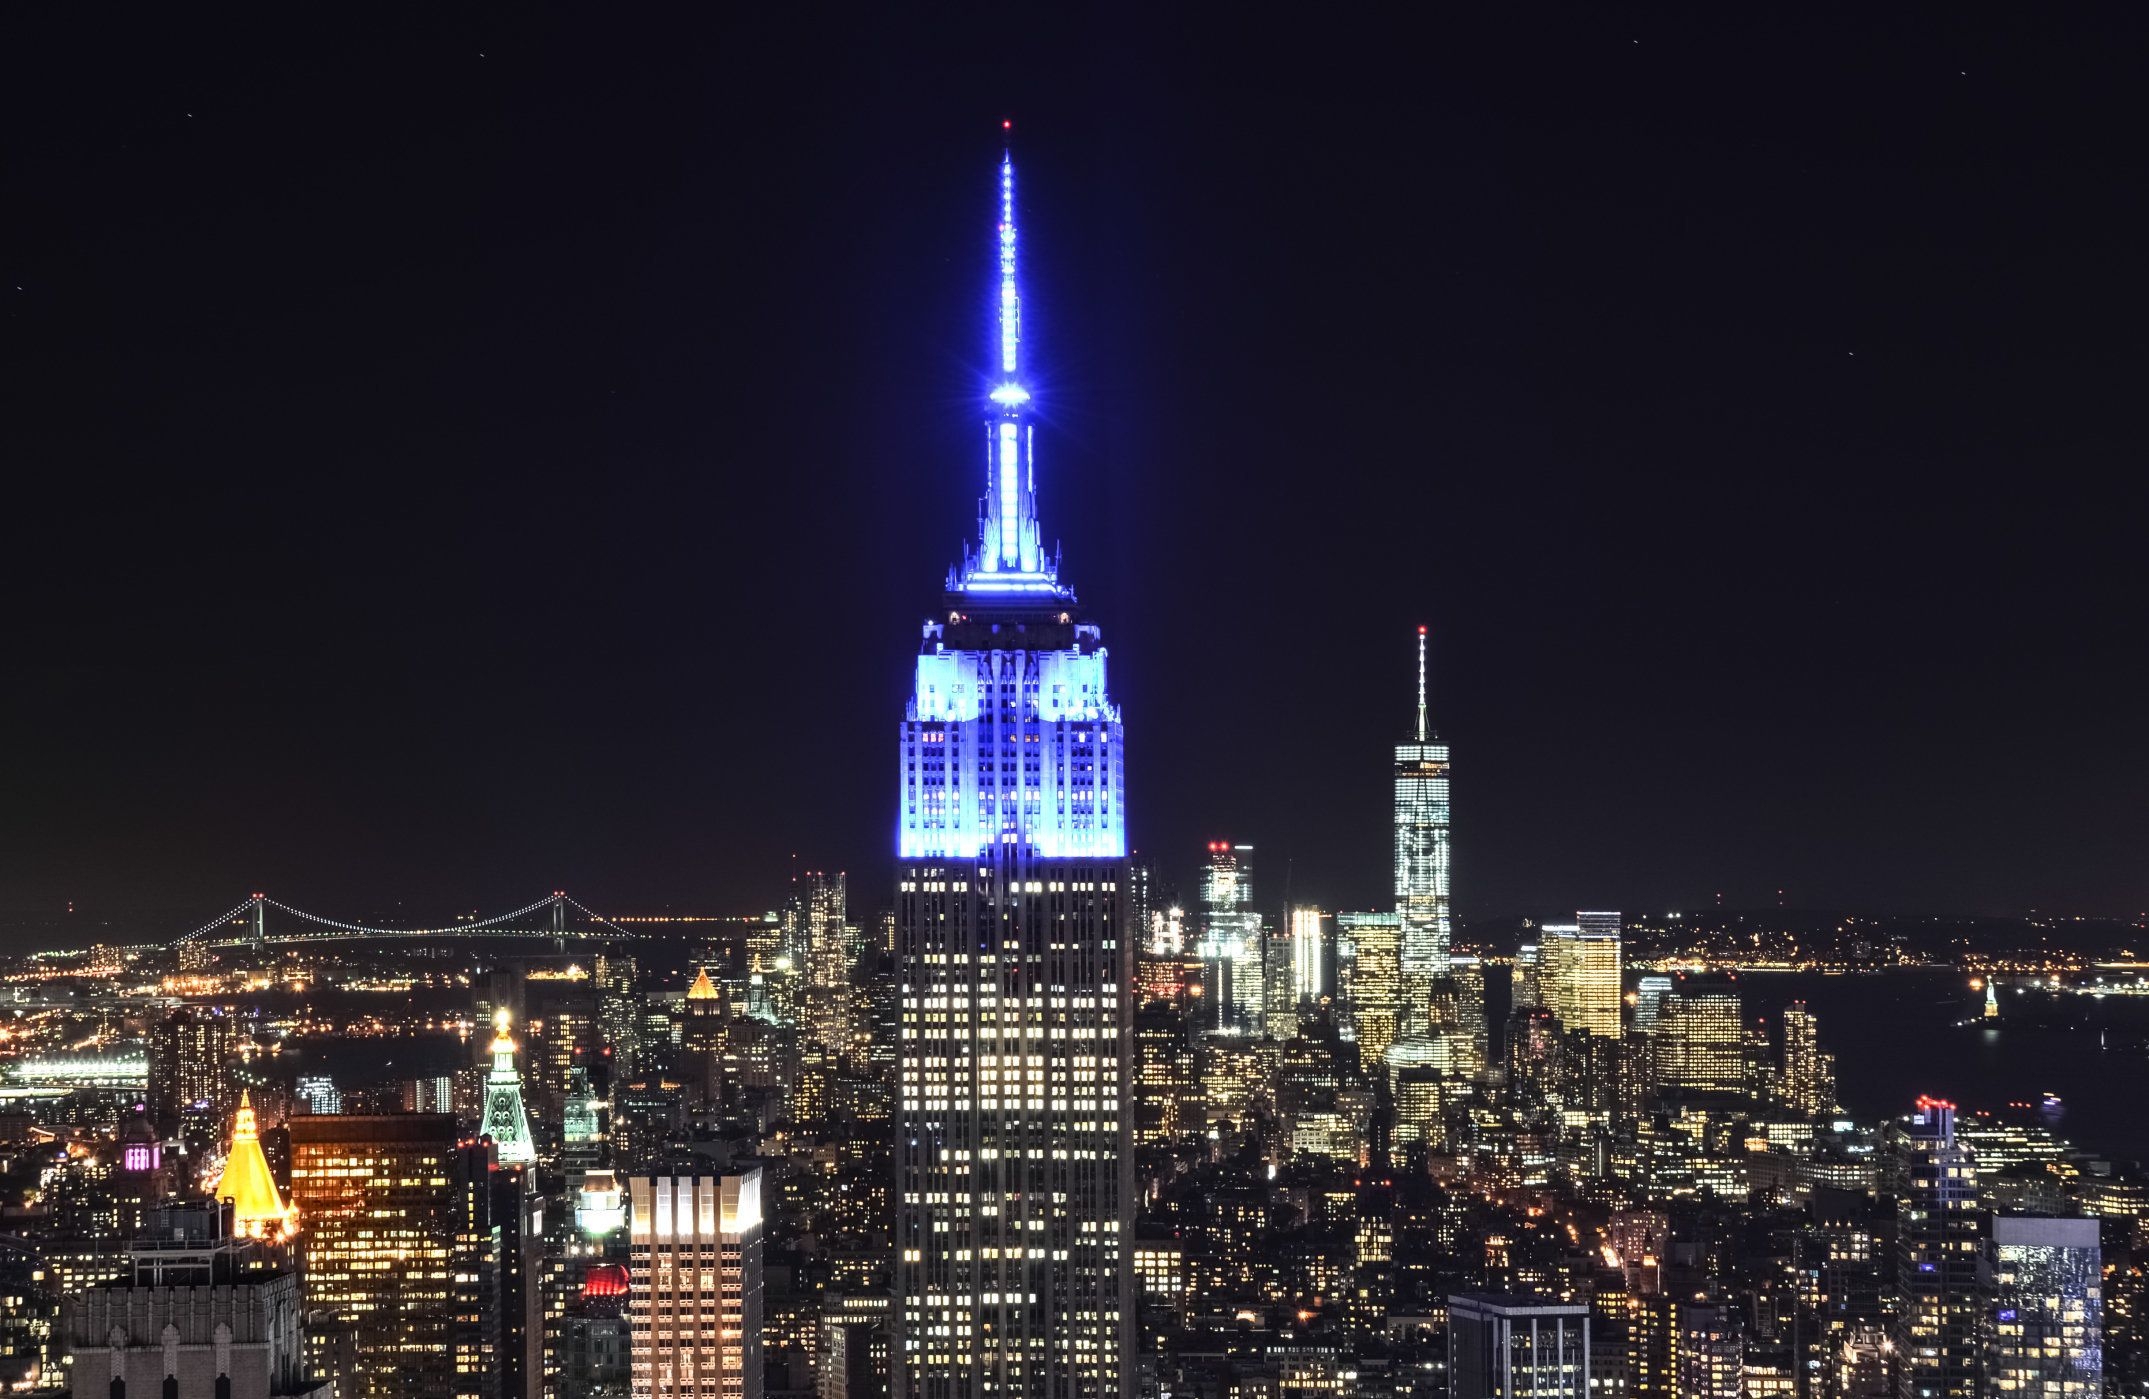 New York skyline illuminated at night with the Empire State building, World Trade Center and Statue of Liberty, USA.